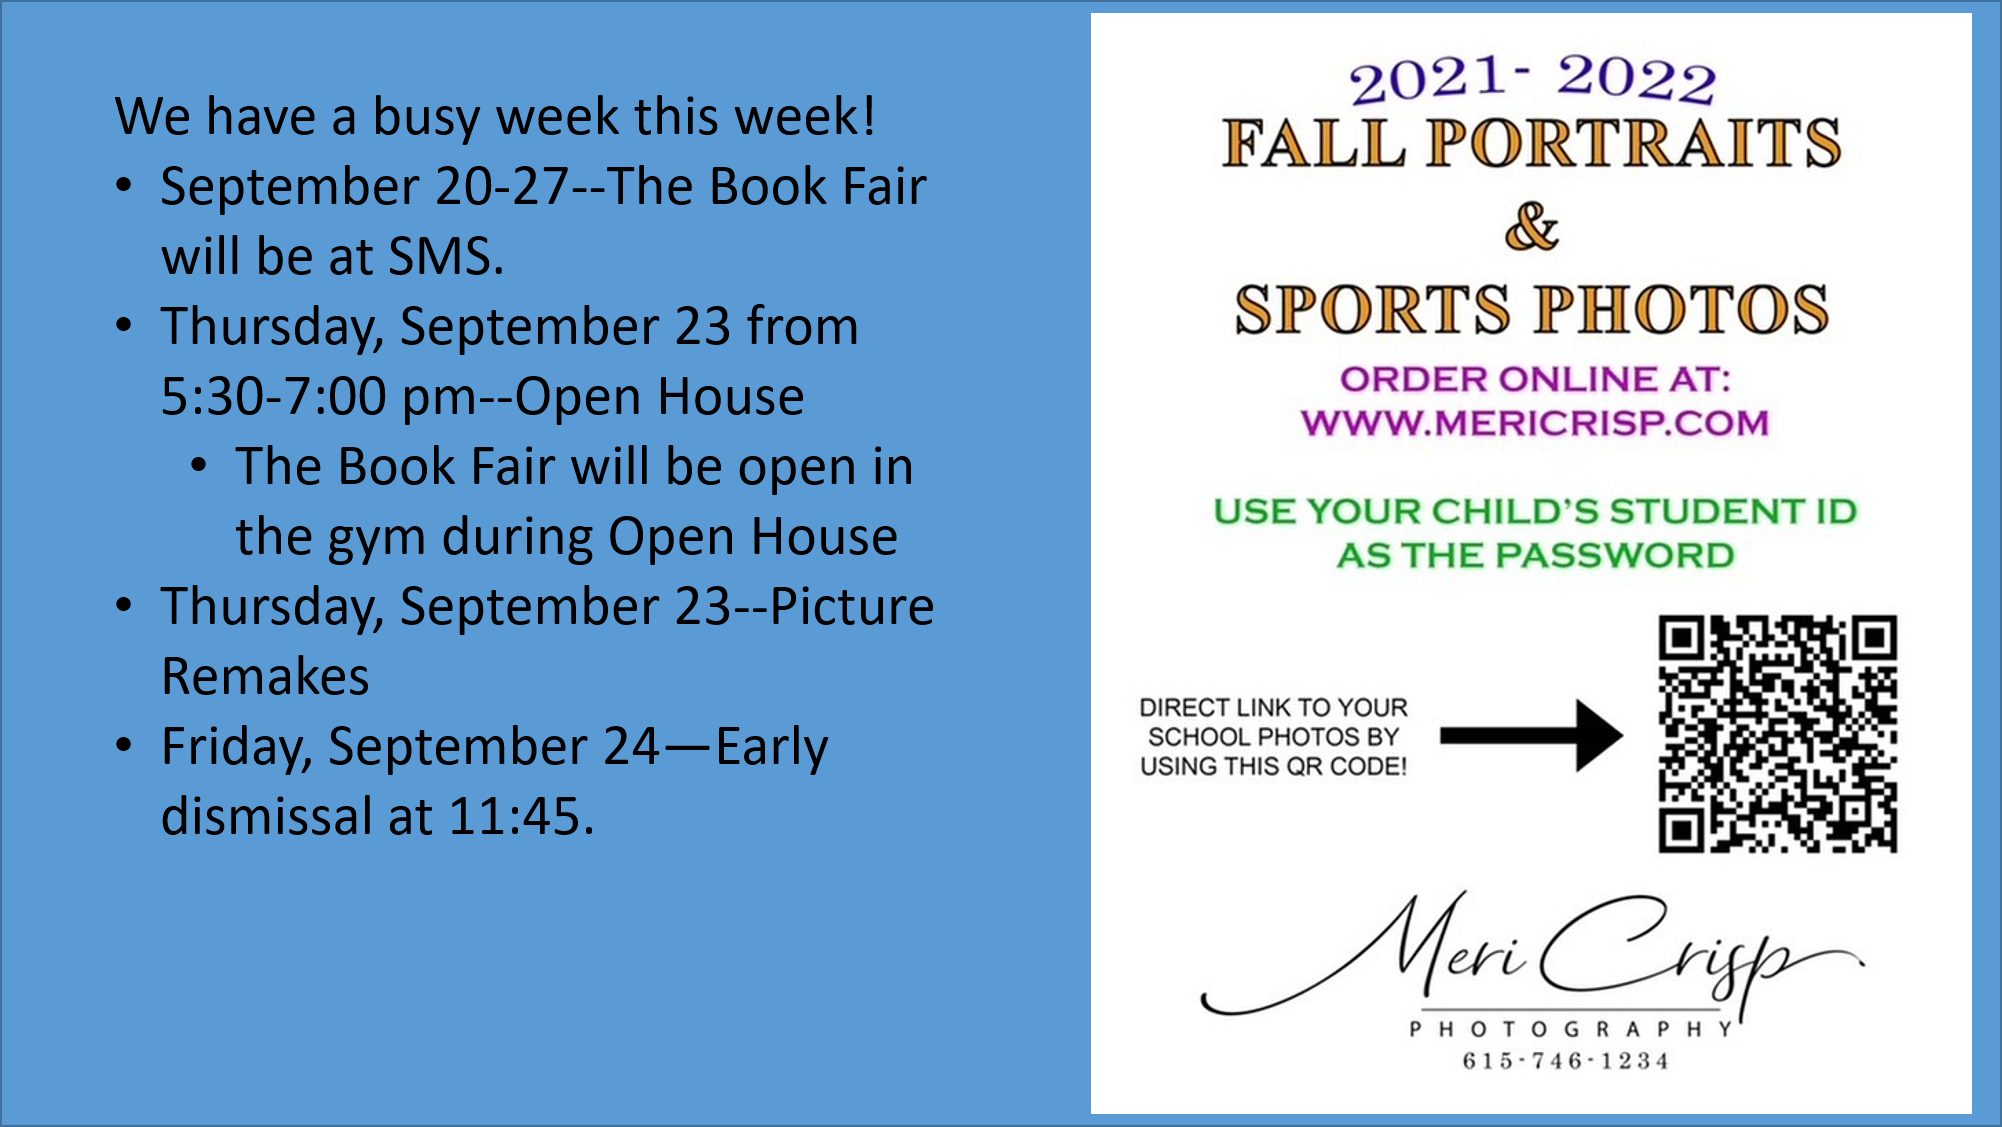 We have a busy week this week! September 20-27--The Book Fair will be at SMS. Thursday, September 23 from 5:30-7:00 pm--Open House The Book Fair will be open in the gym during Open House Thursday, September 23--Picture Remakes  Friday, September 24—Early dismissal at 11:45.